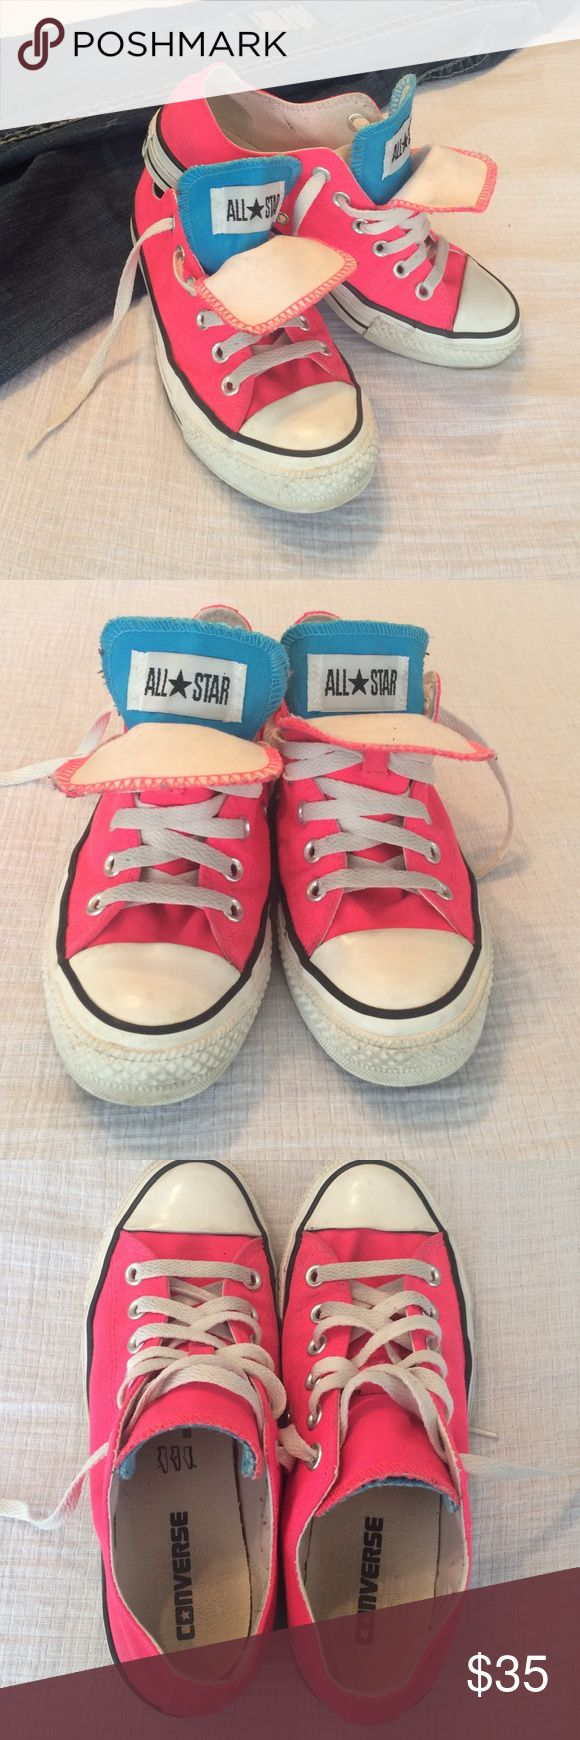 Neon pink and blue Converse 👀Look at these bright colors 👀These are in great condition! They have only been worn a handful of times. They just need a little cleaning and they would look new! Bright pink shoes with turquoise tongues.   Size 7 in Women's and 5 in men's. Converse Shoes Sneakers